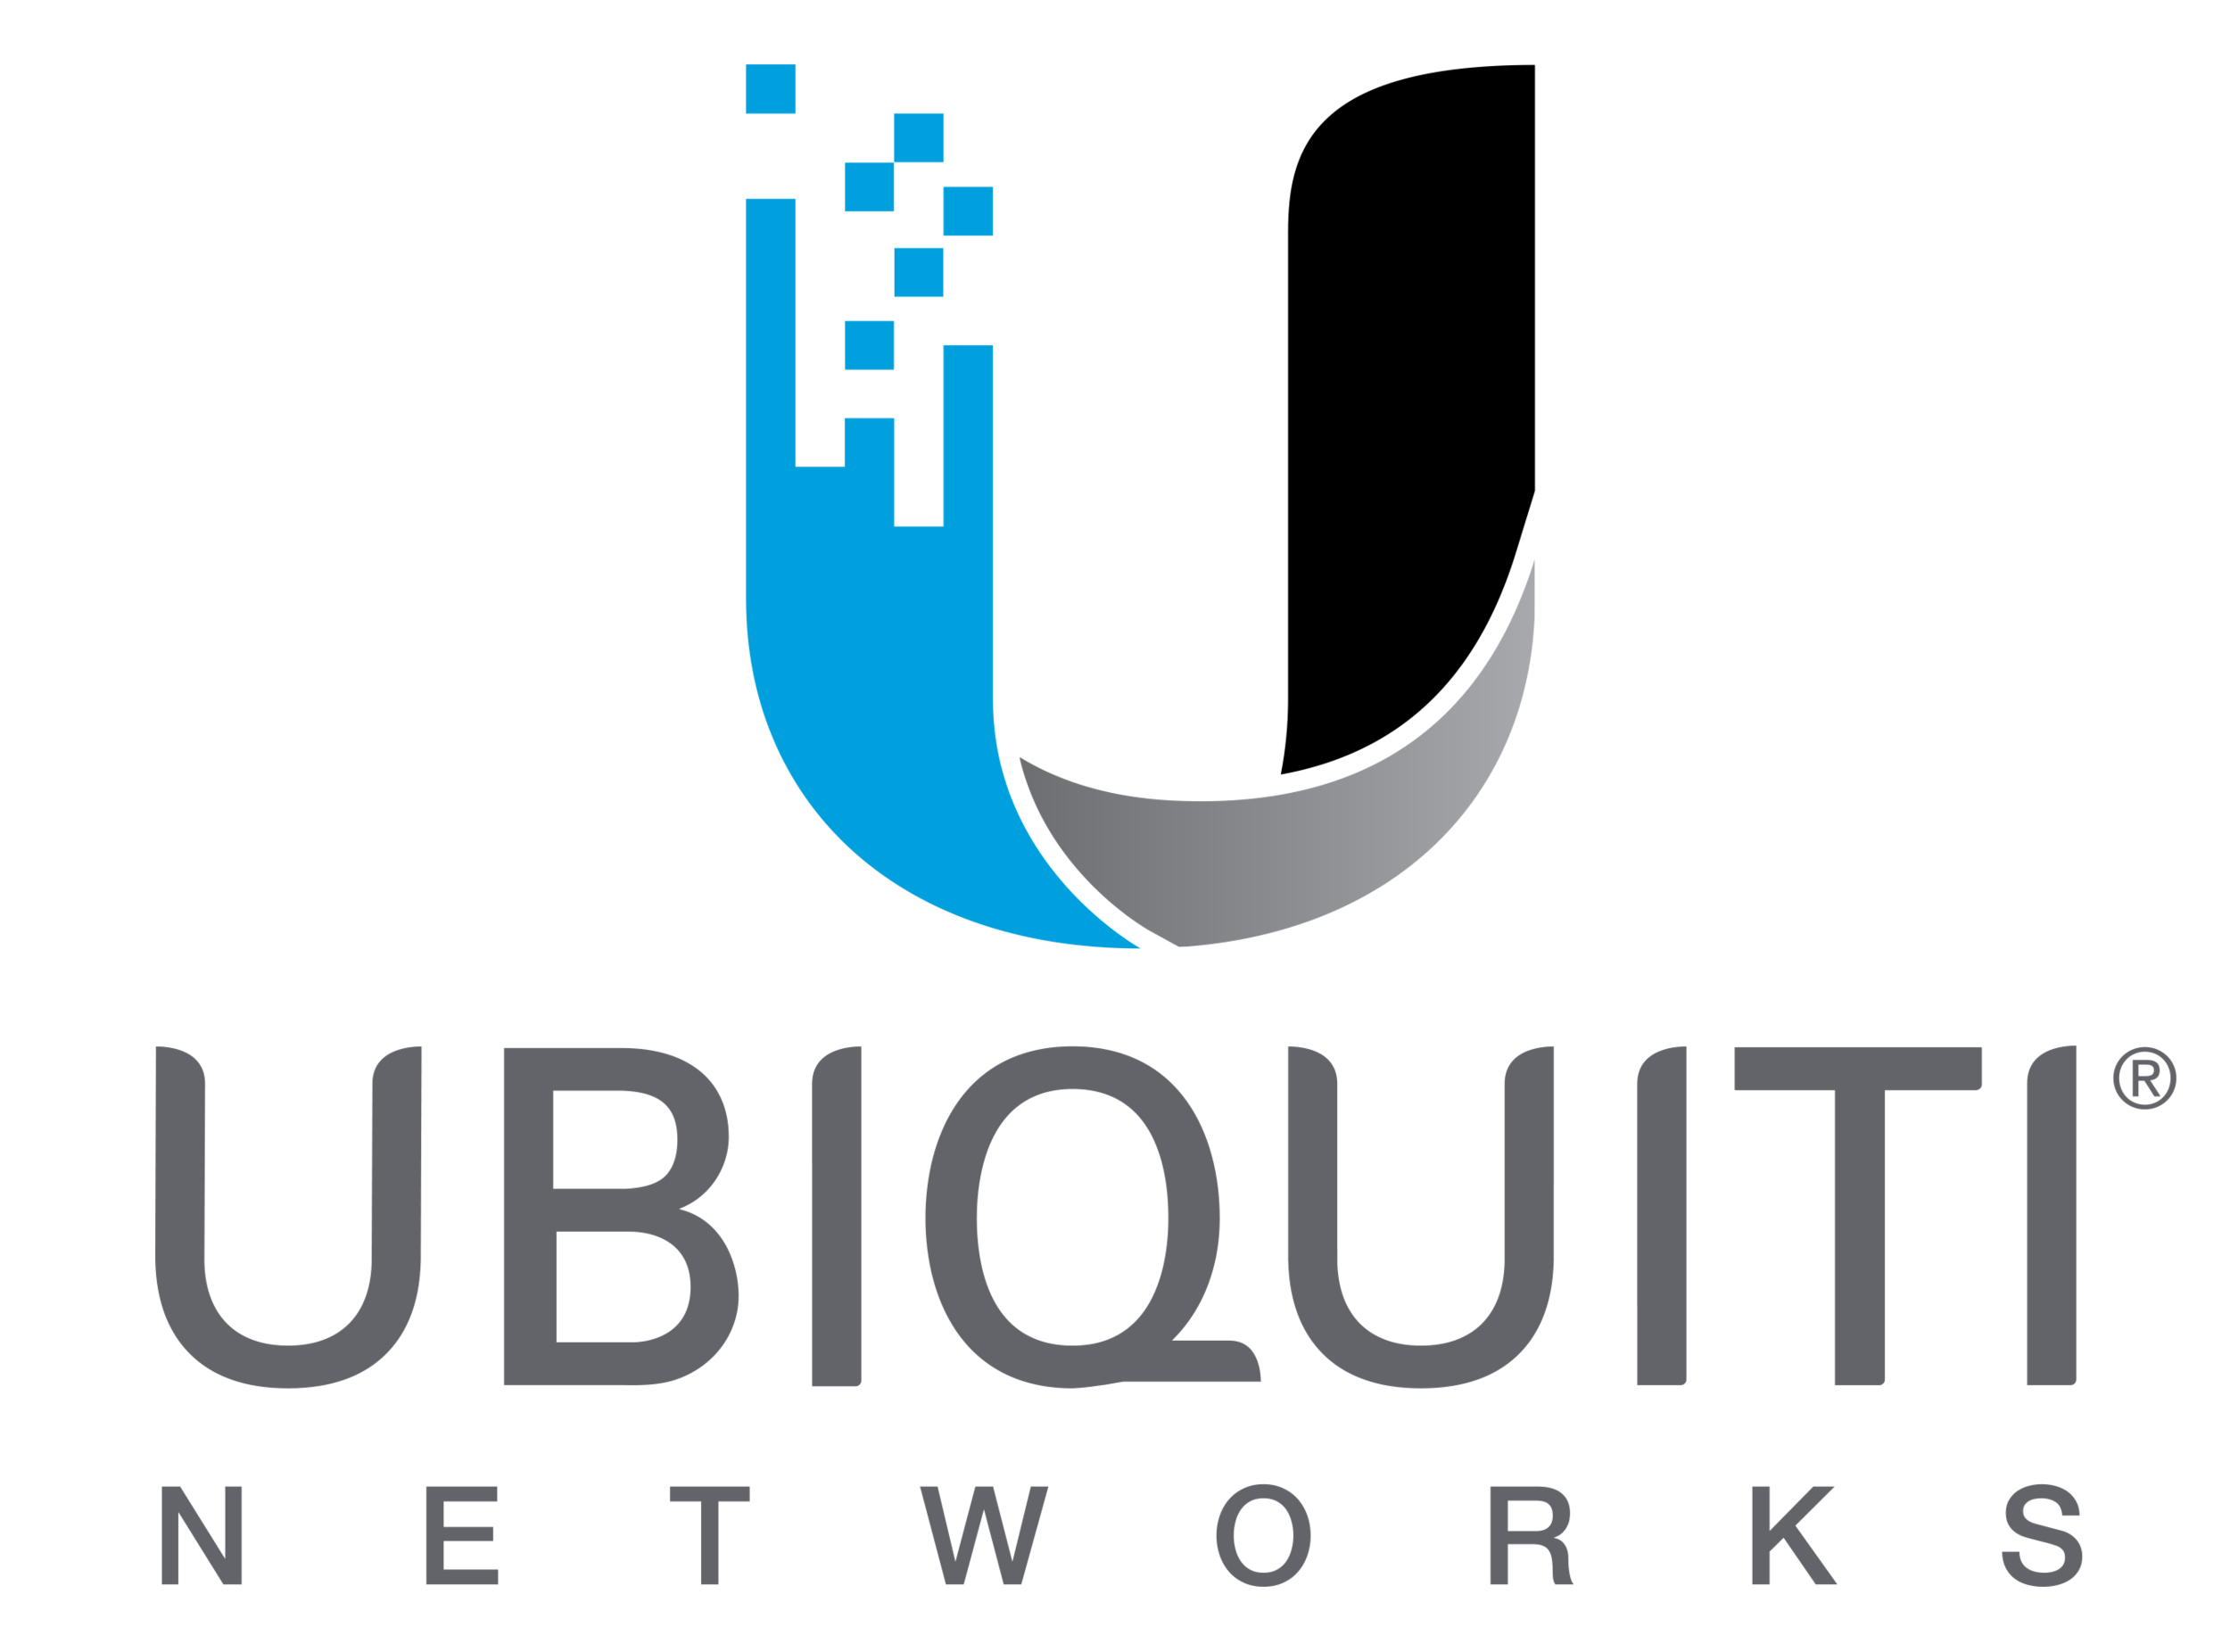 ubnt_logo_2700x2000.png